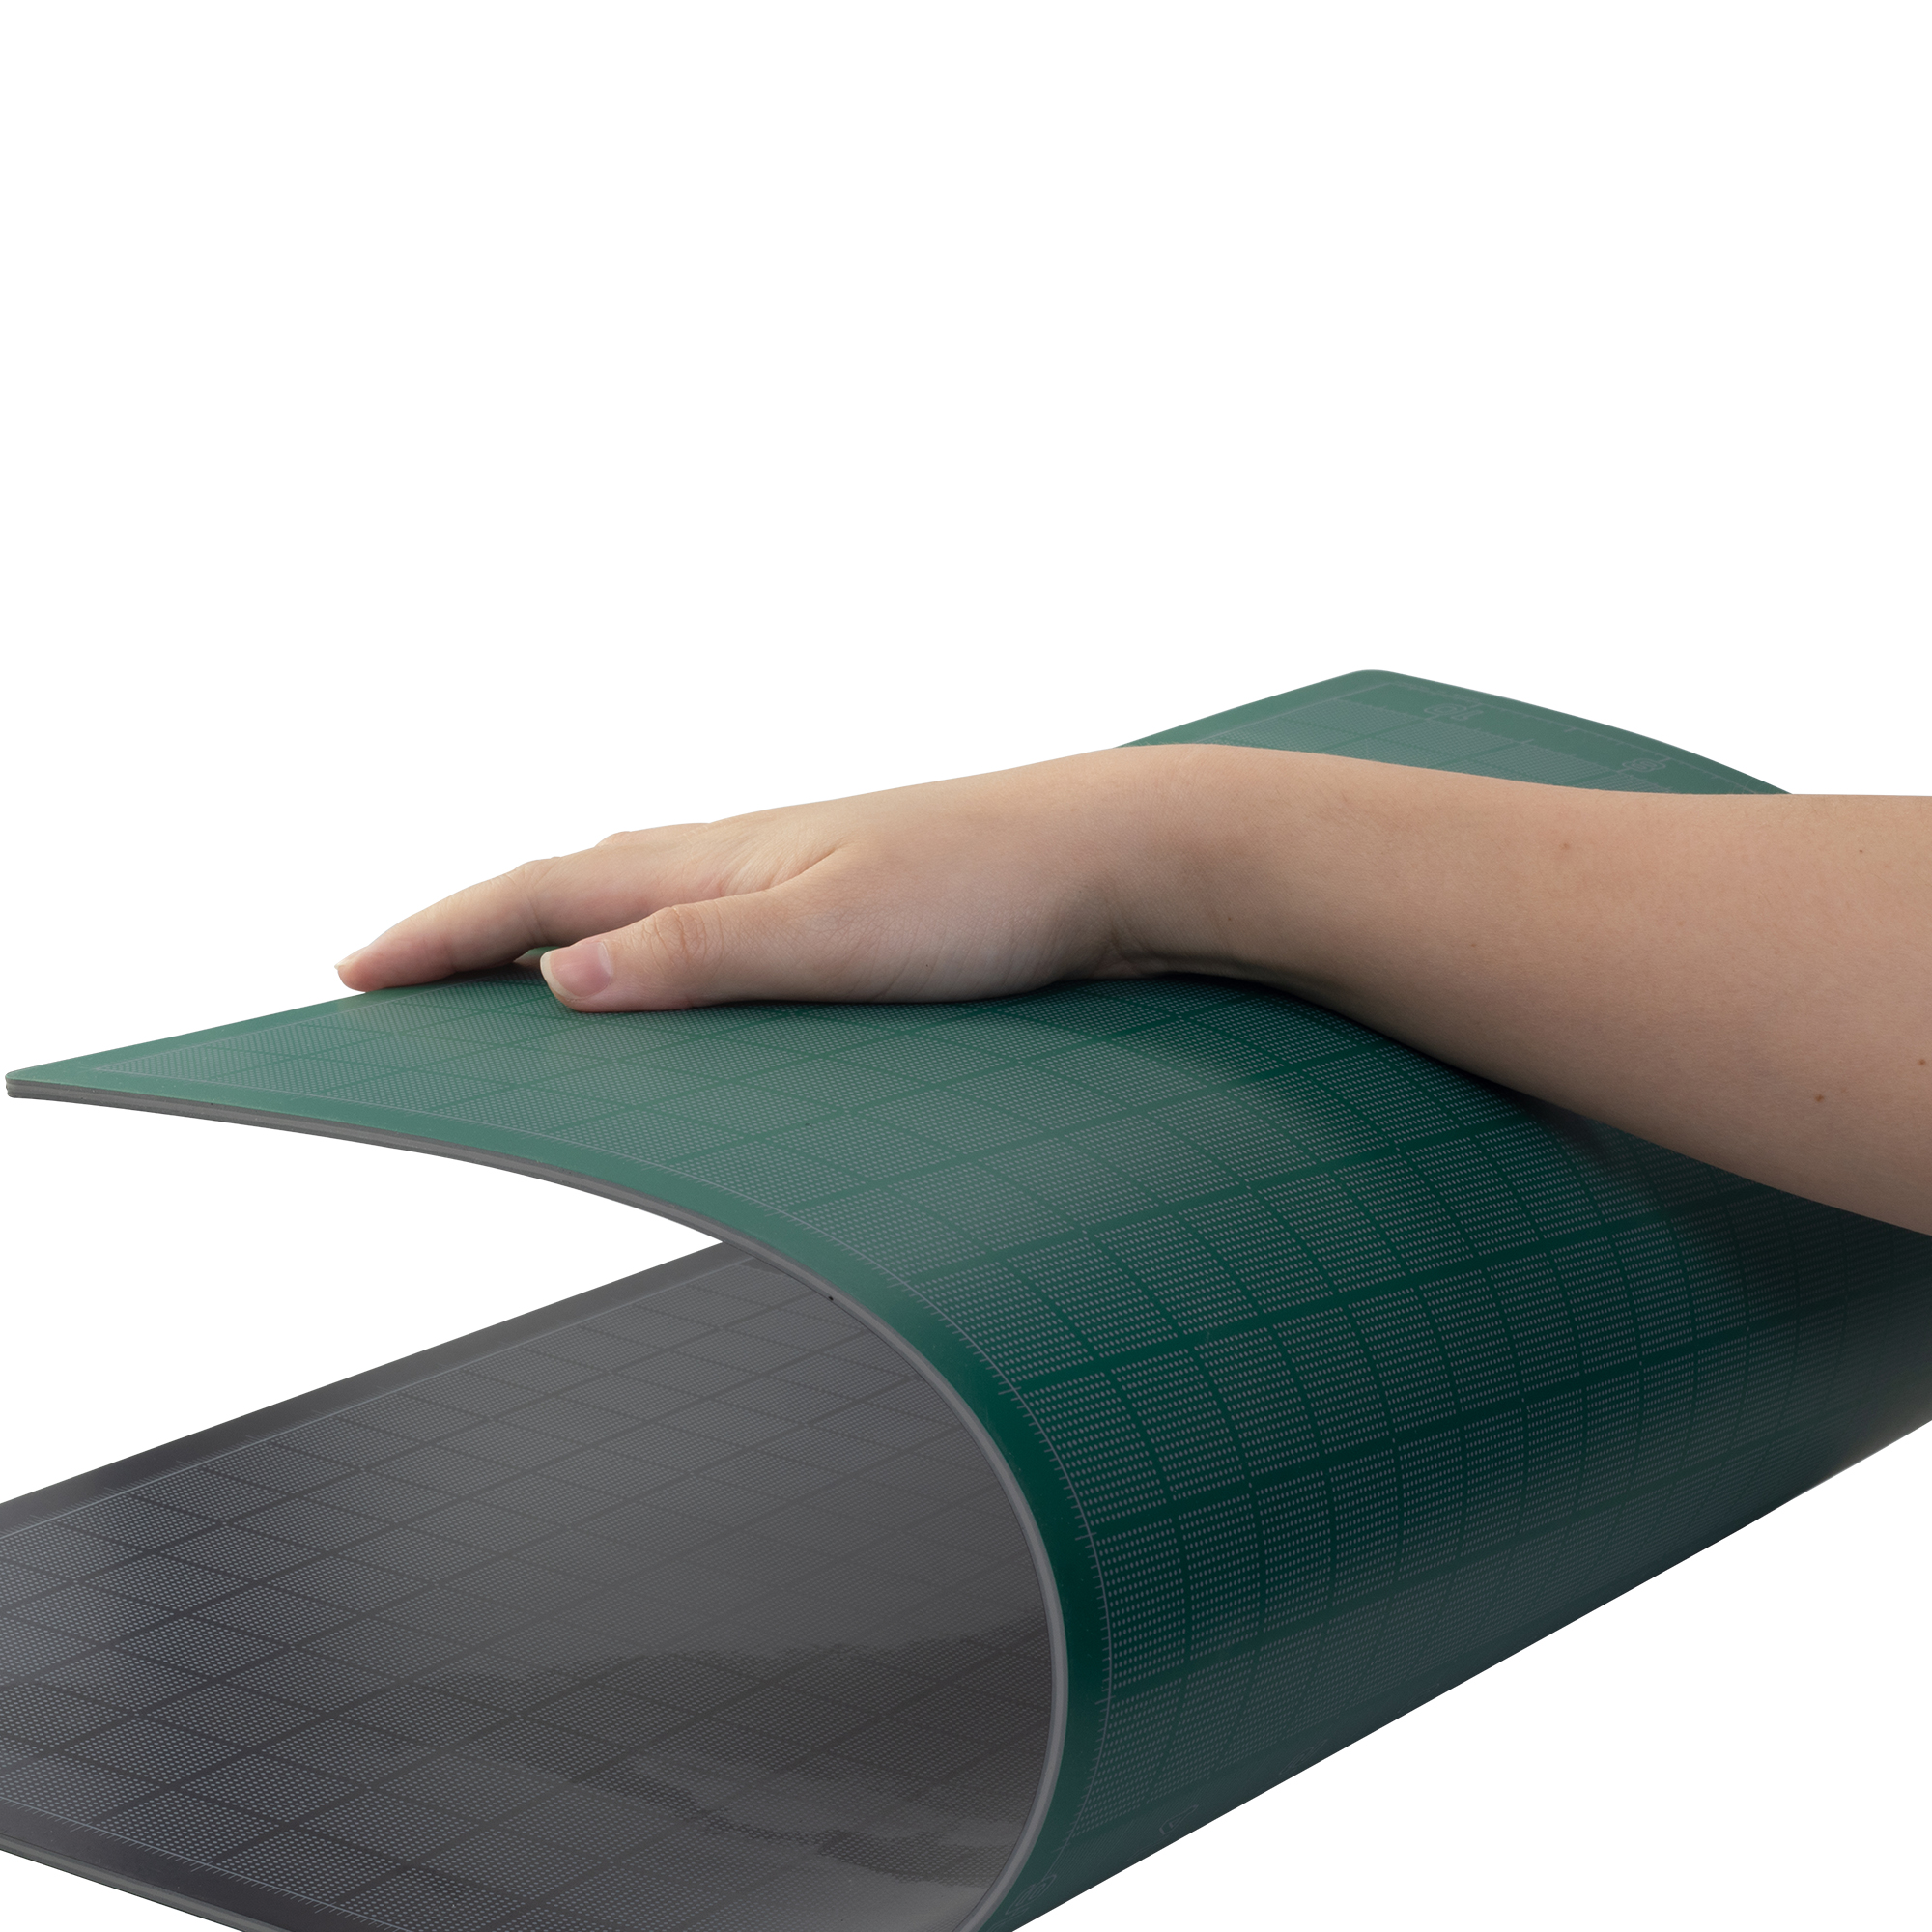 flexible bendable cutting matt, able to flexible when is used. self healing cutting matt from pacific arc